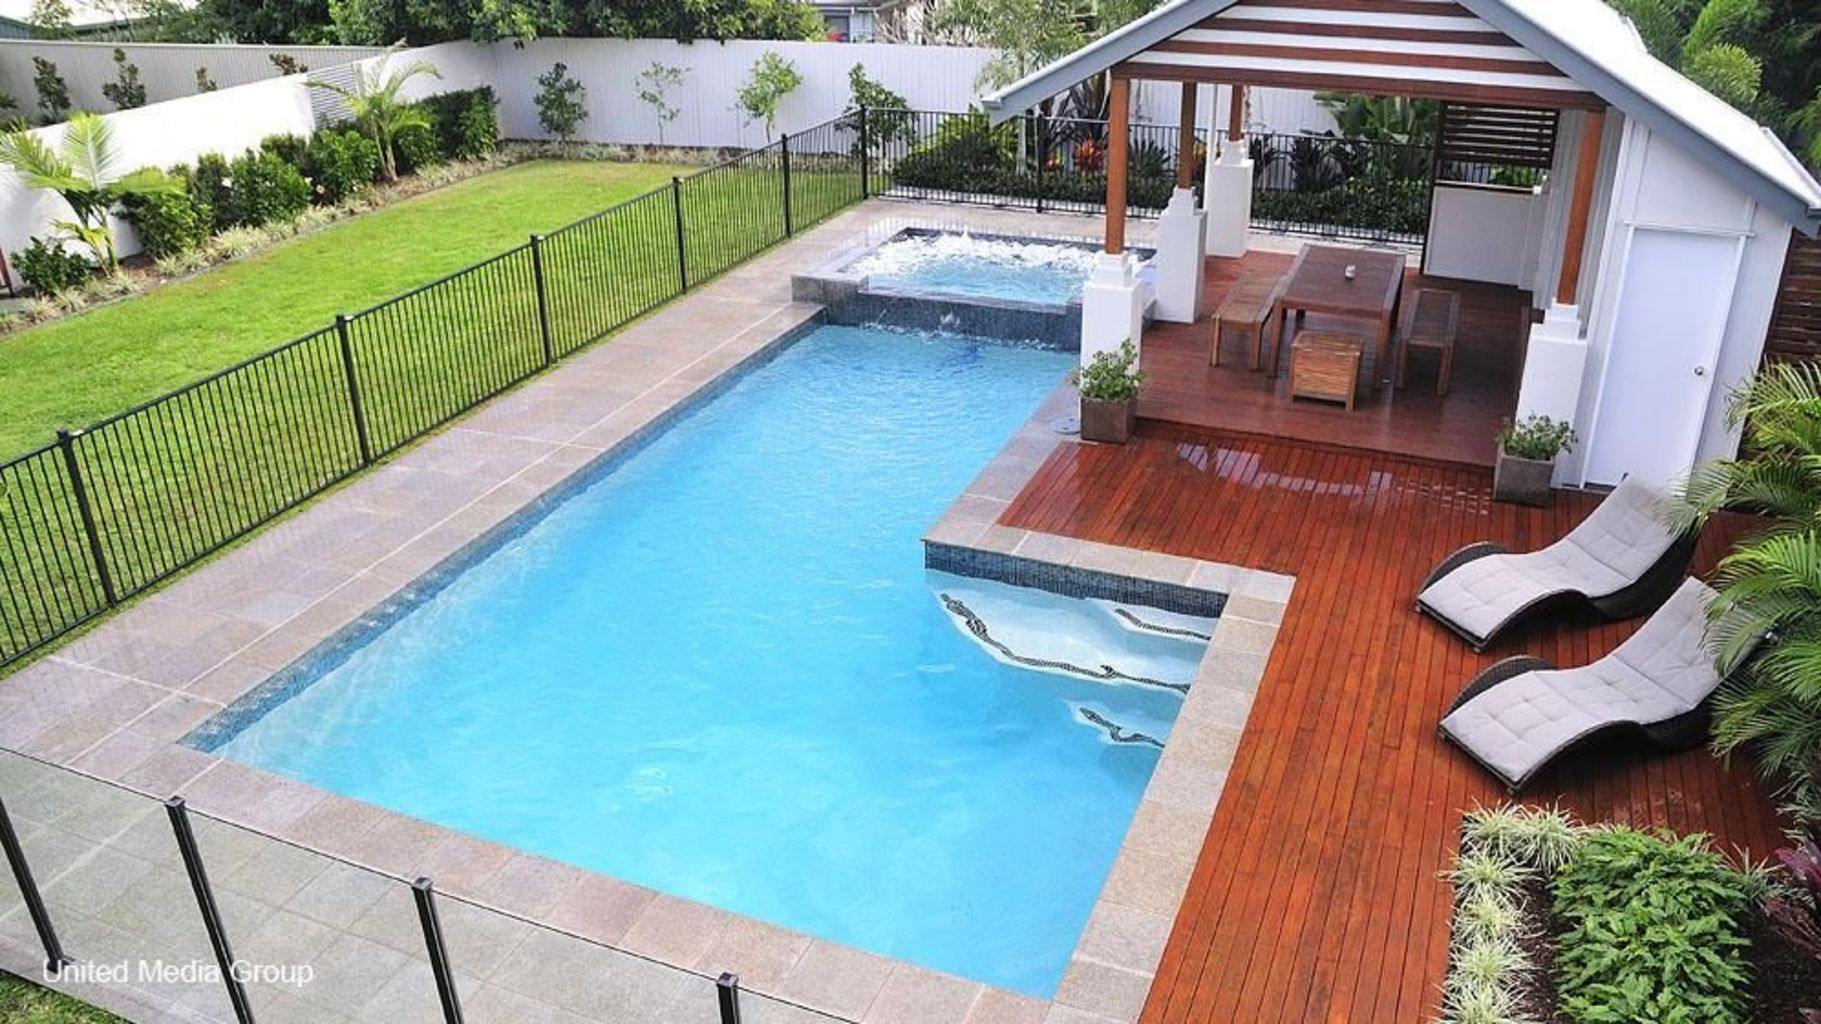 35 Trending Small Pool Designs For Your Backyard Shairoom Com Outdoor Pool Area Stone Pool Deck Swimming Pool Designs